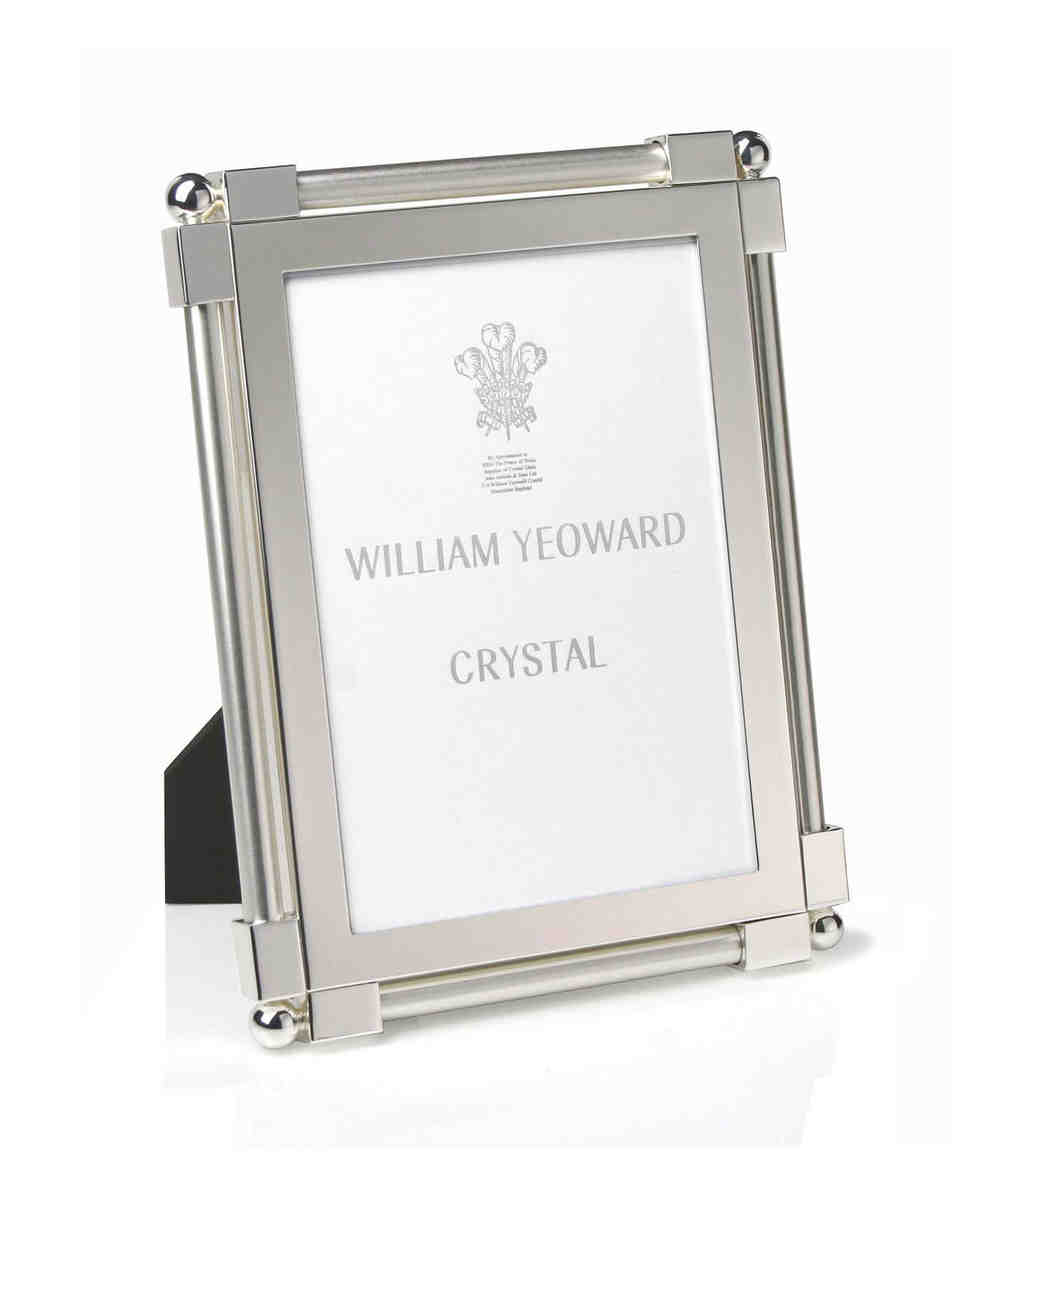 platinum anniversary gifts frame william yeoward